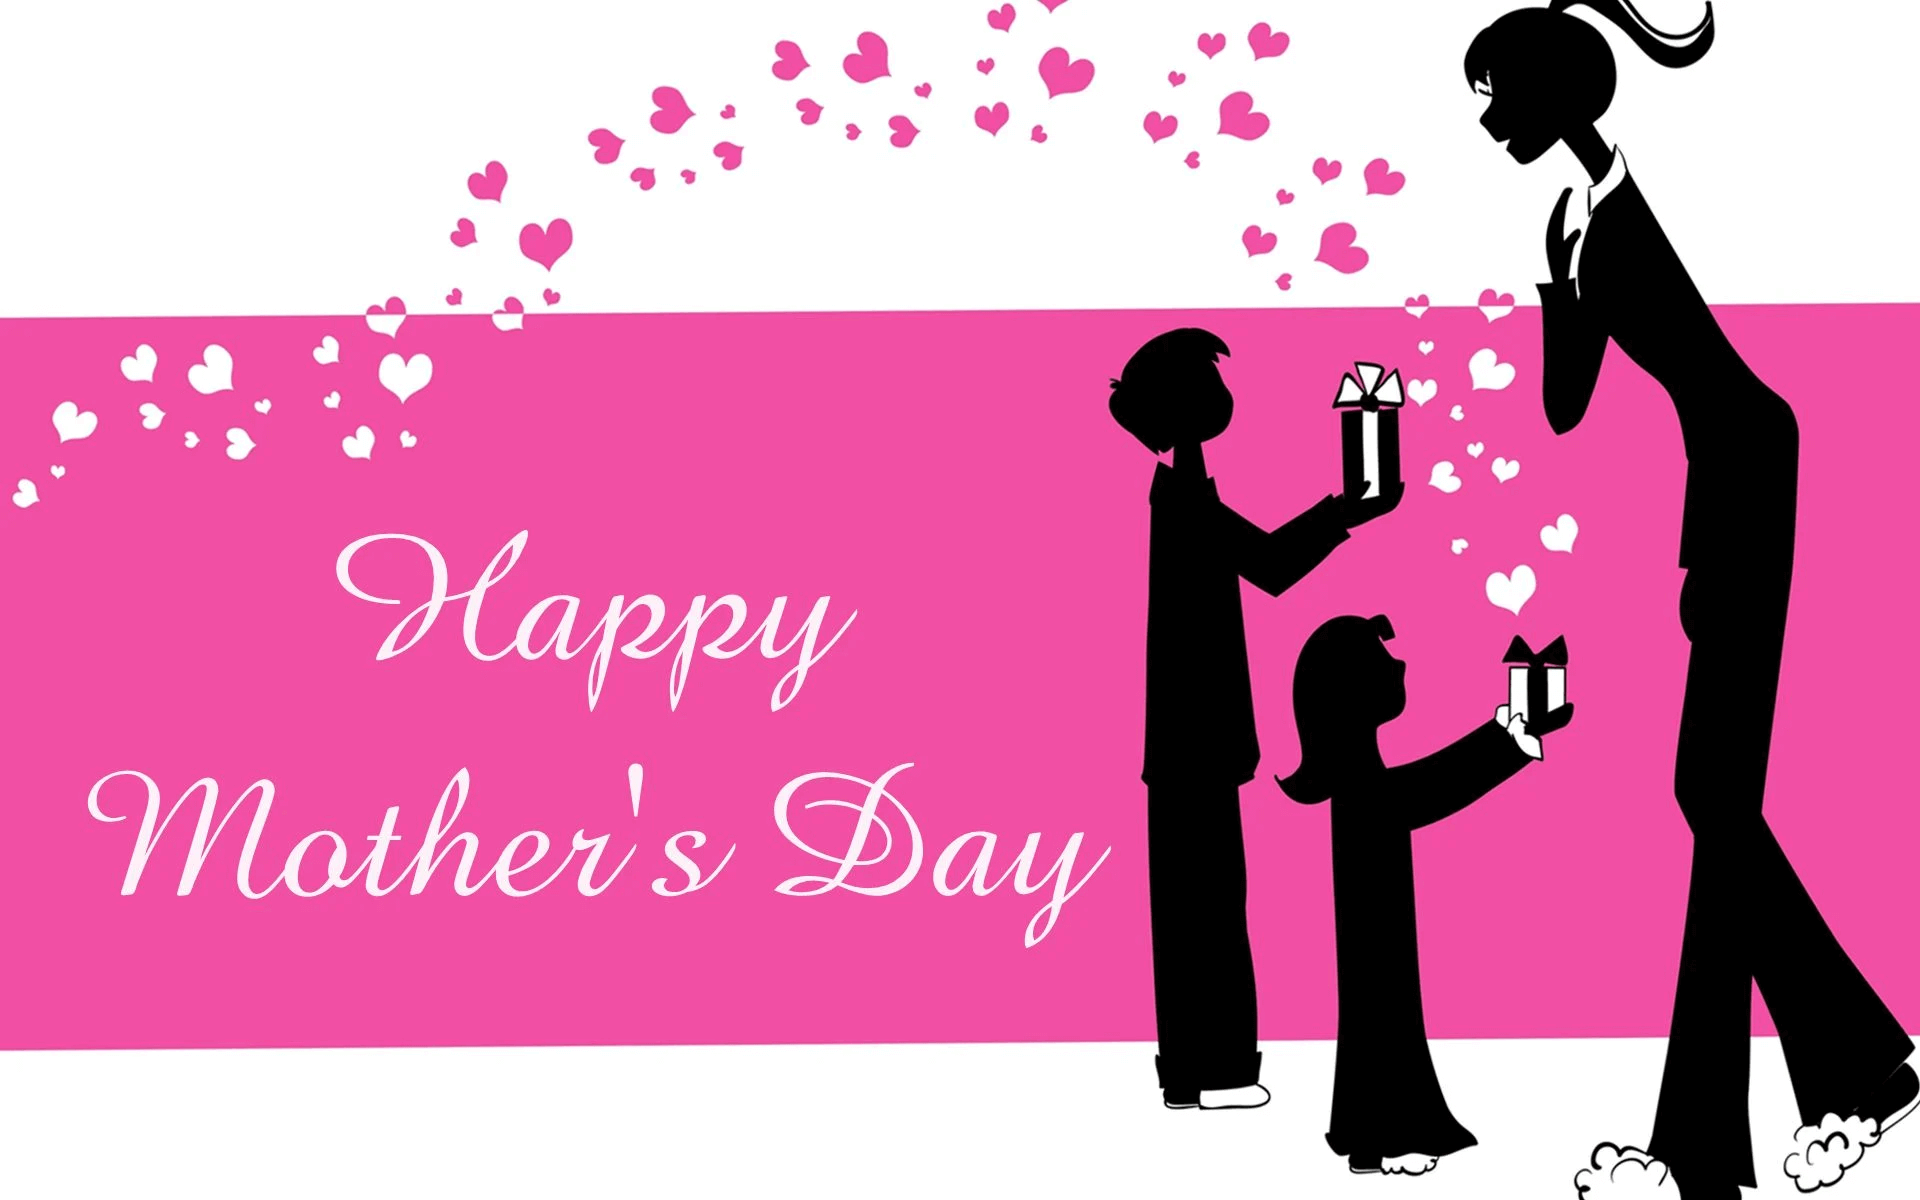 Happy Mothers day images in high quality